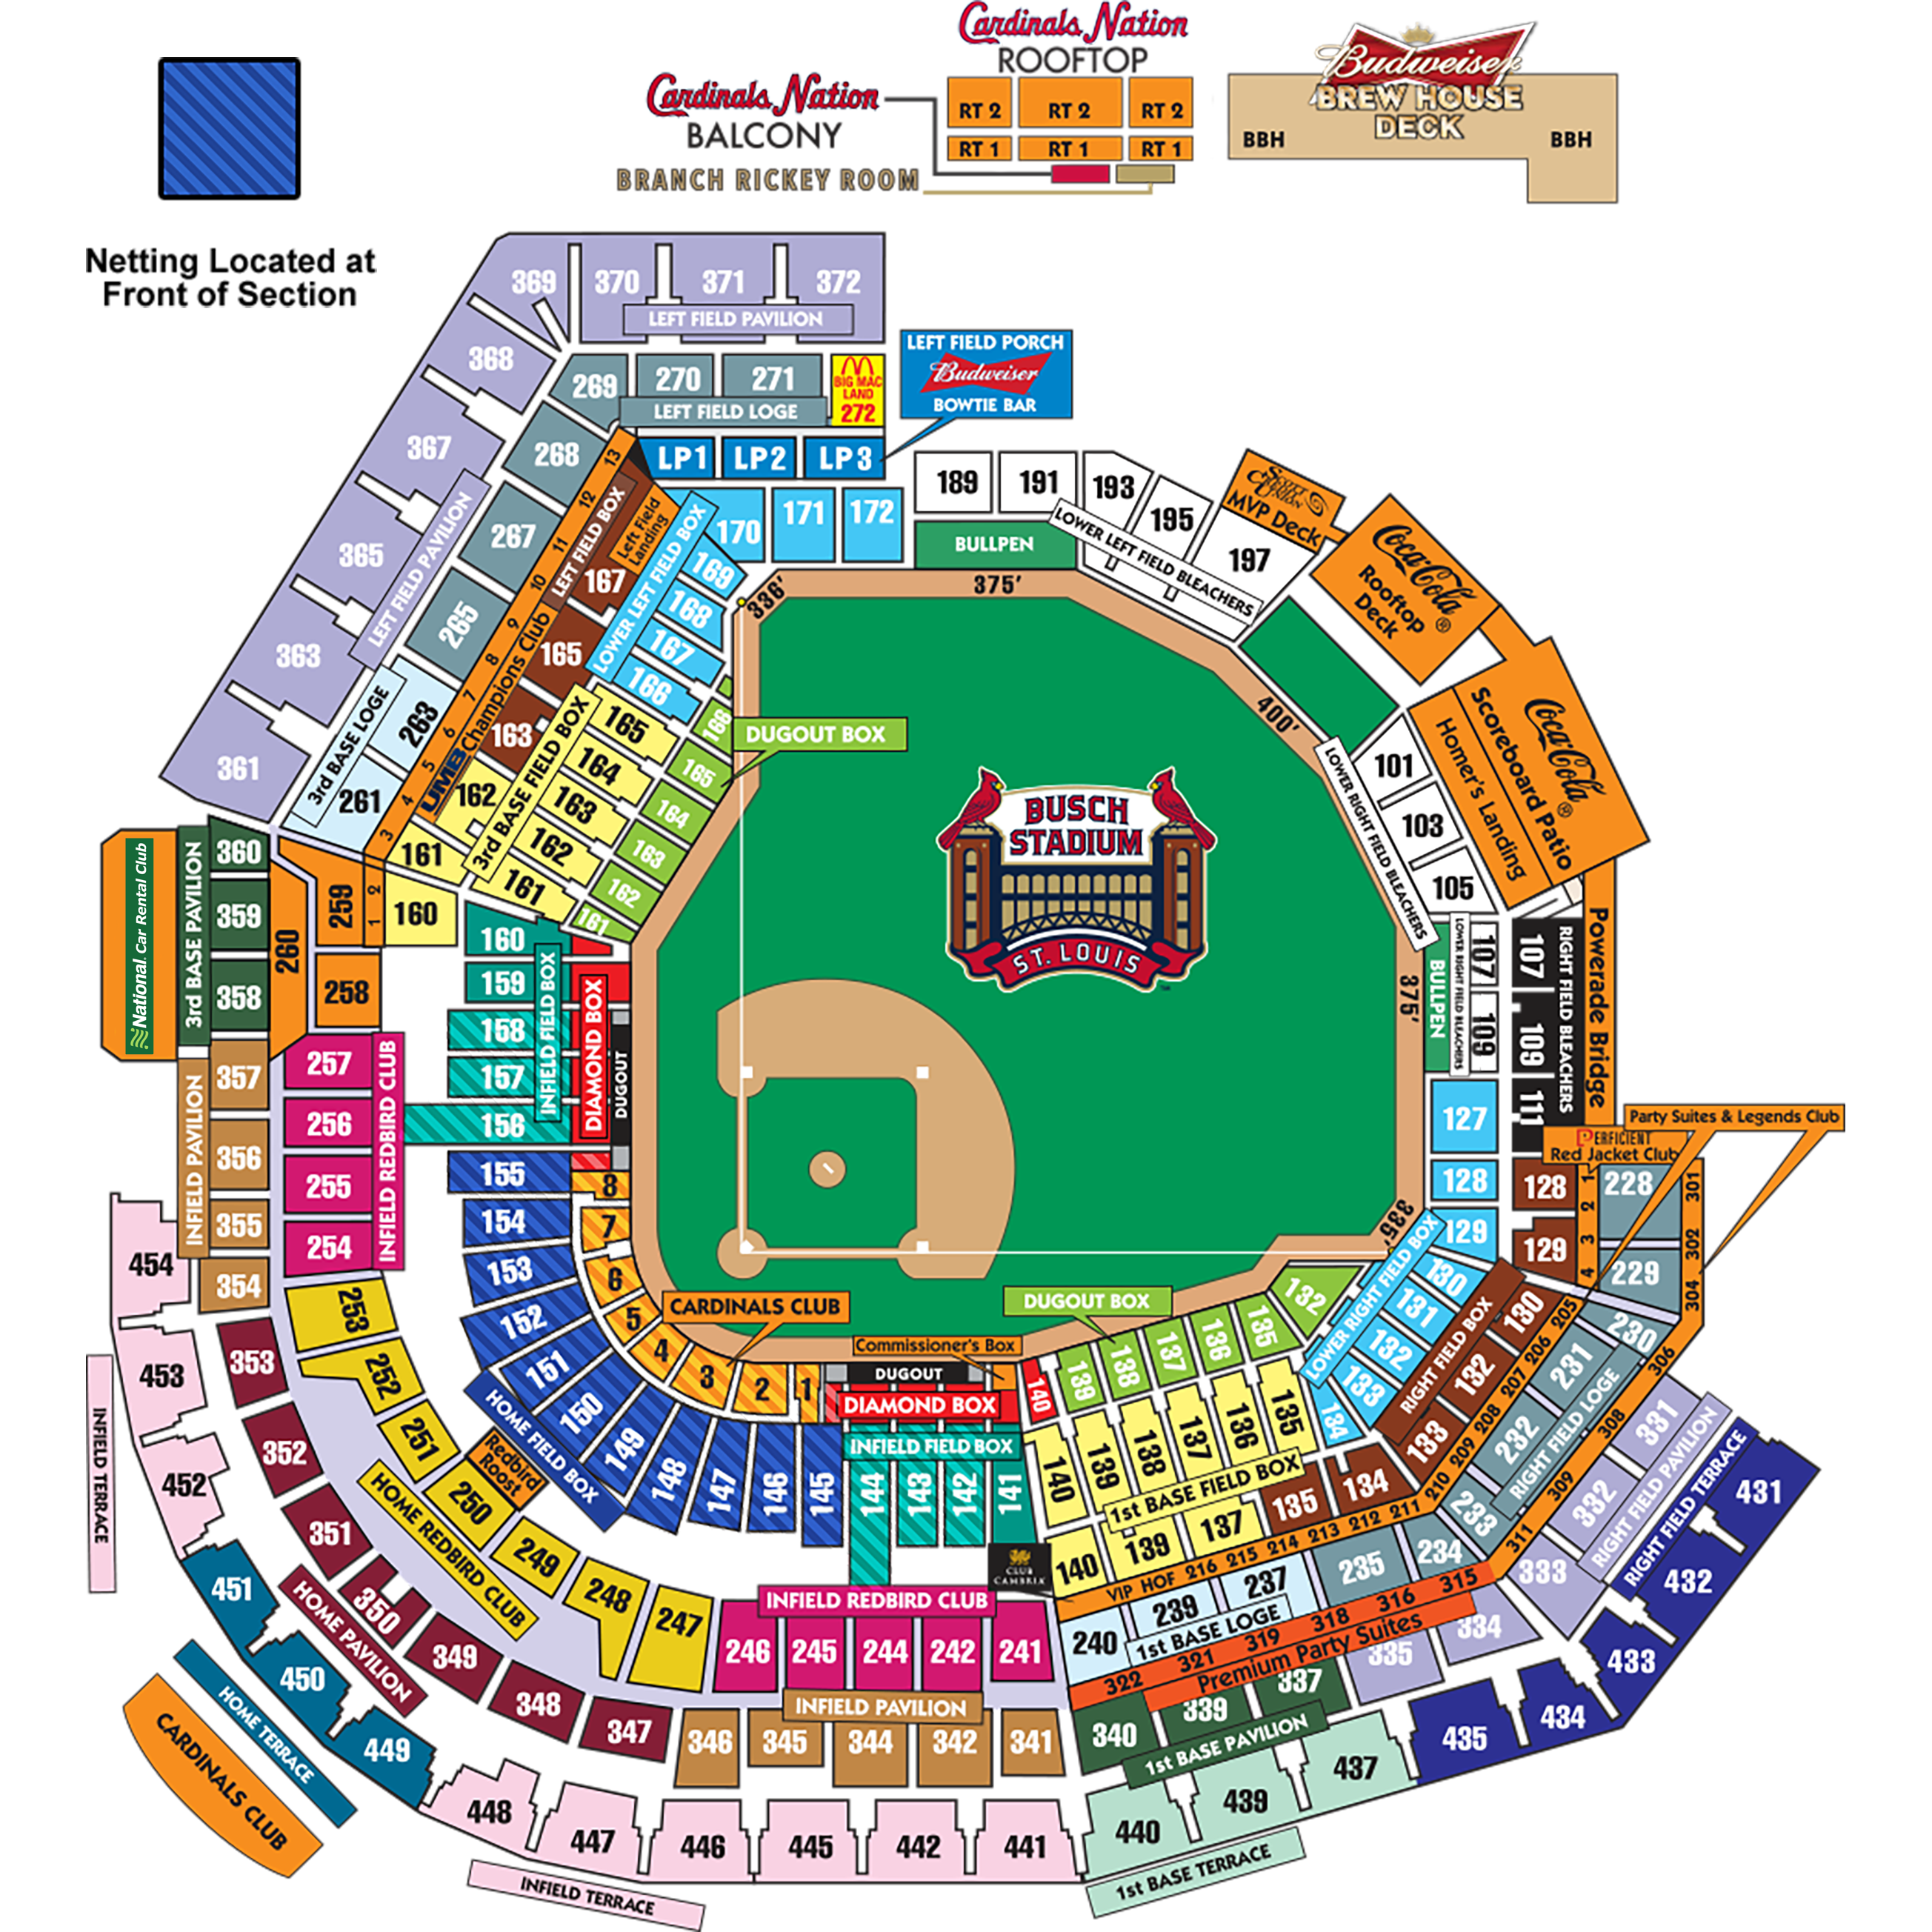 Cardinals Stadium Map Busch Stadium Netting | St. Louis Cardinals Cardinals Stadium Map